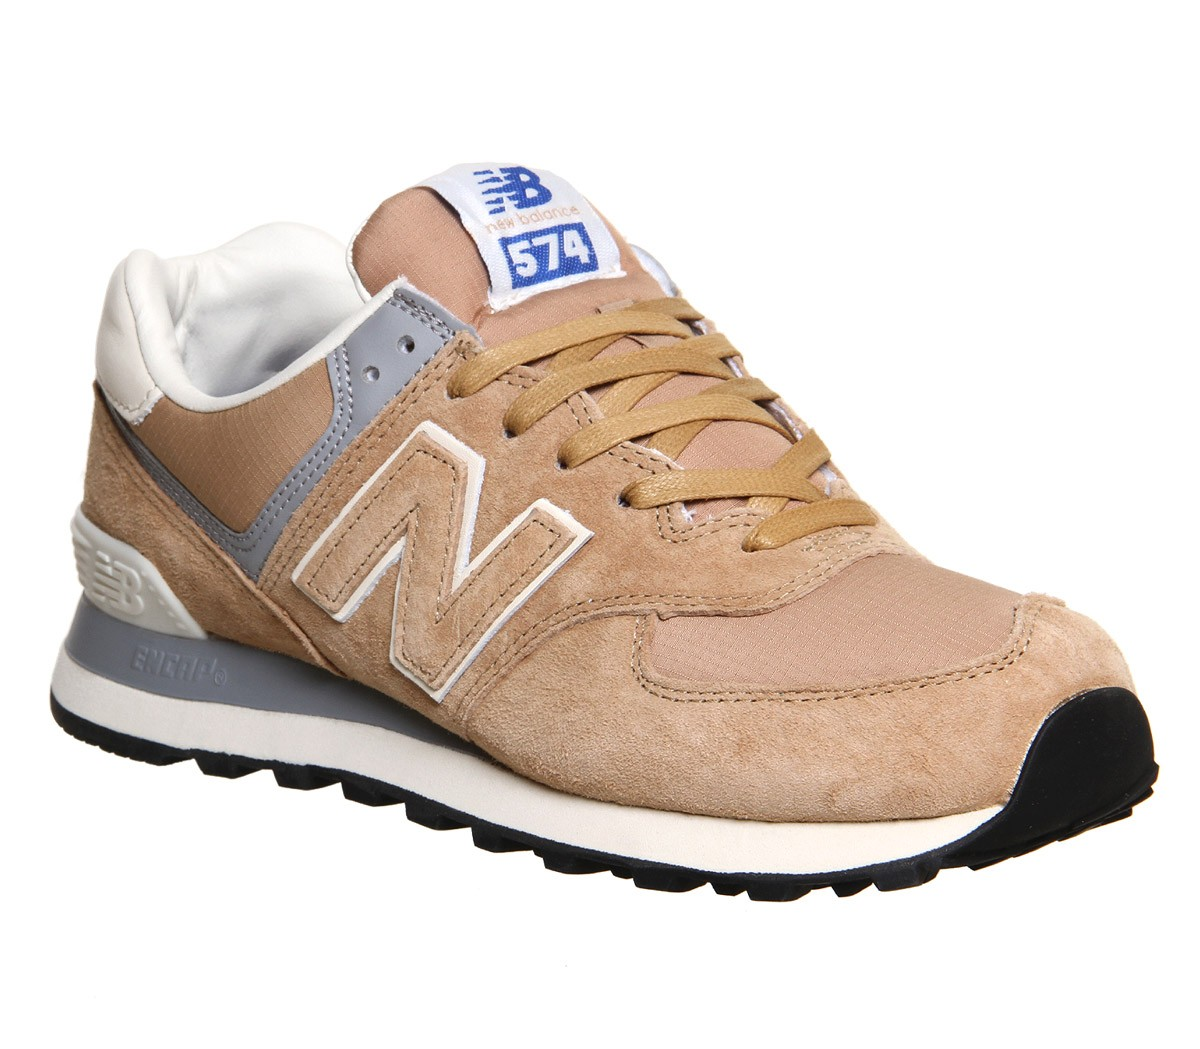 New Balance M574 Daim/Textile Chaussures Running Pour Femme Champagne Beige